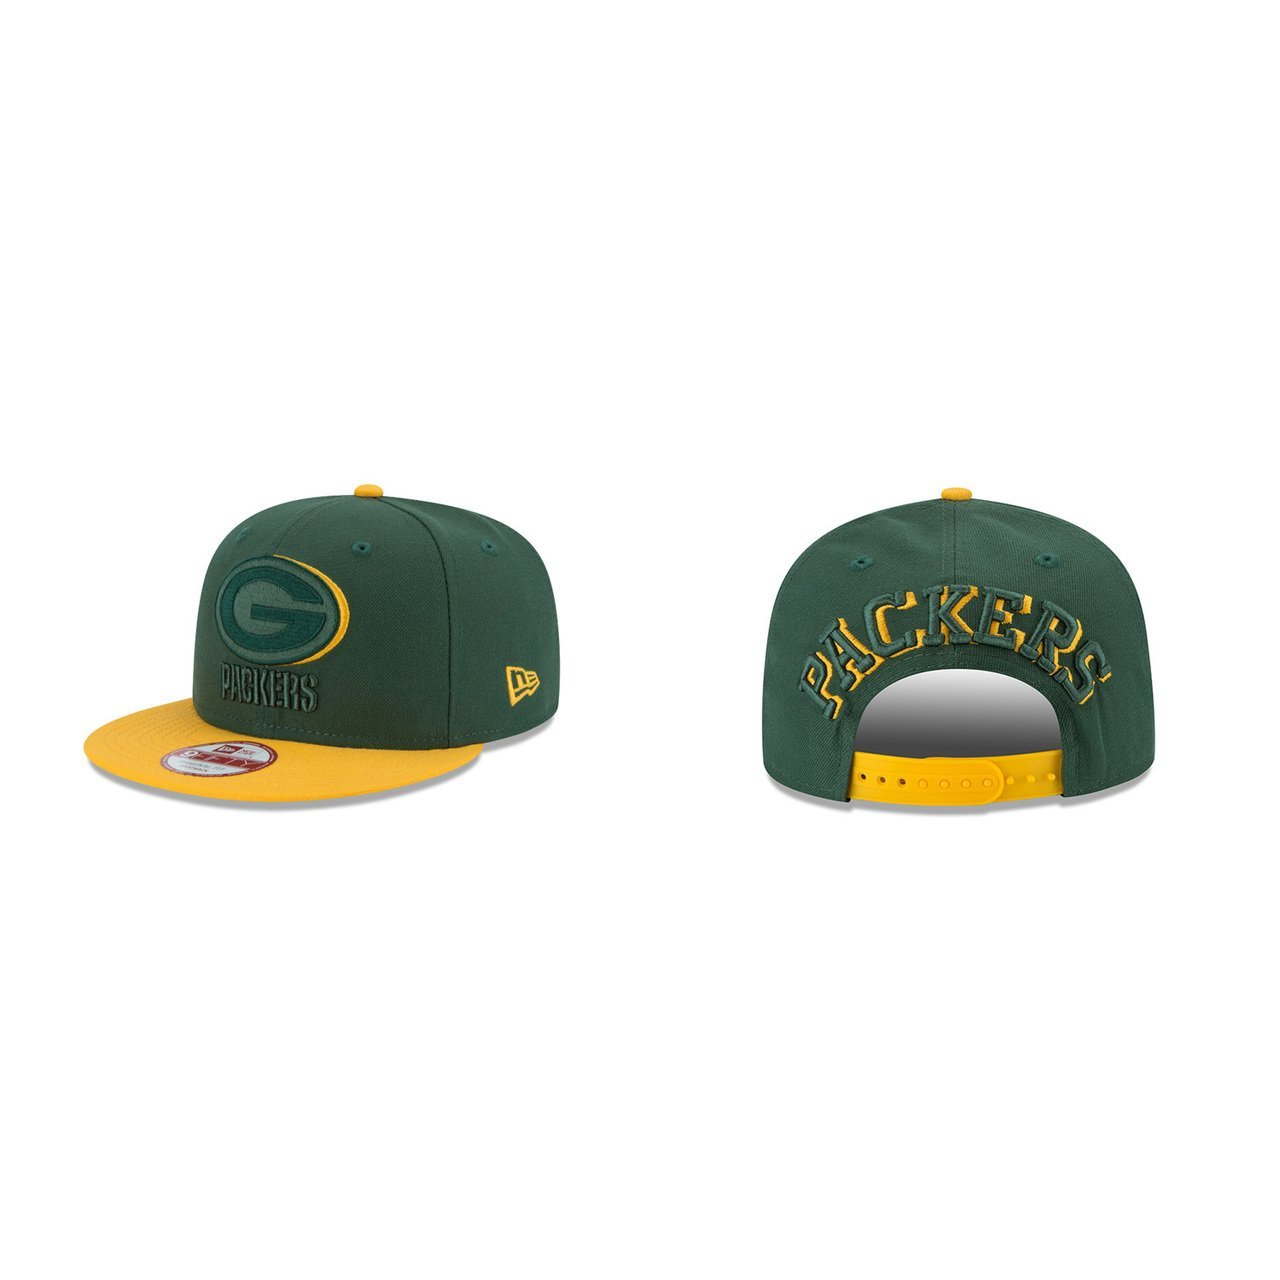 1c0115e11ef Get Quotations · Green Bay Packers Shadow Slice Snapback Cap - Green